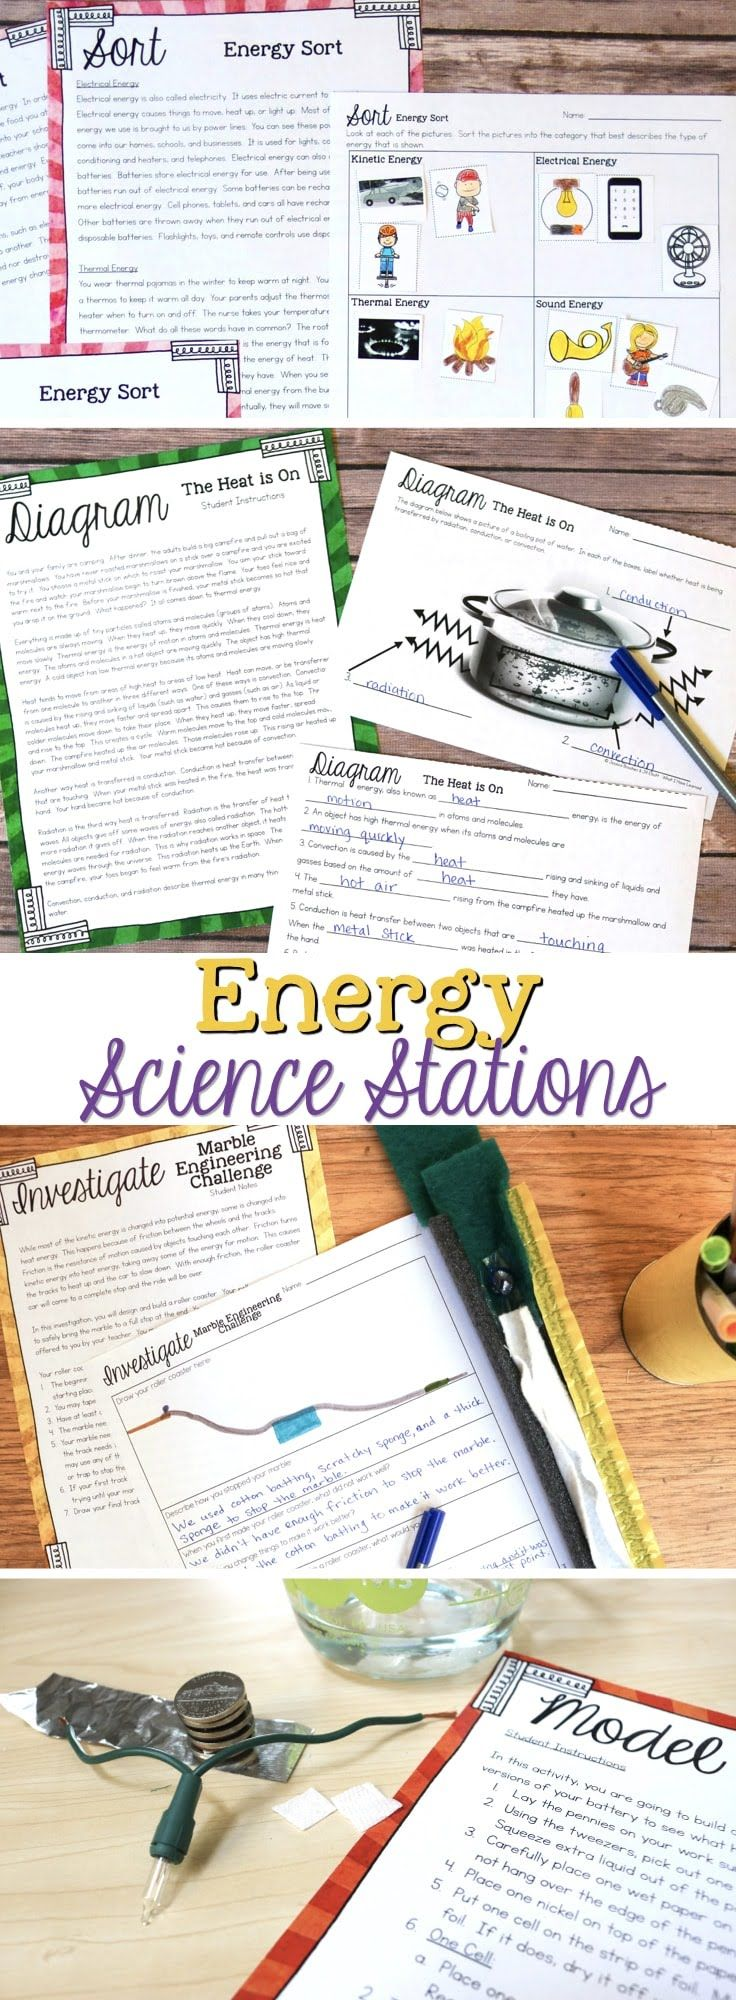 best 25 science stations ideas on pinterest science news articles science penguin and 4th. Black Bedroom Furniture Sets. Home Design Ideas